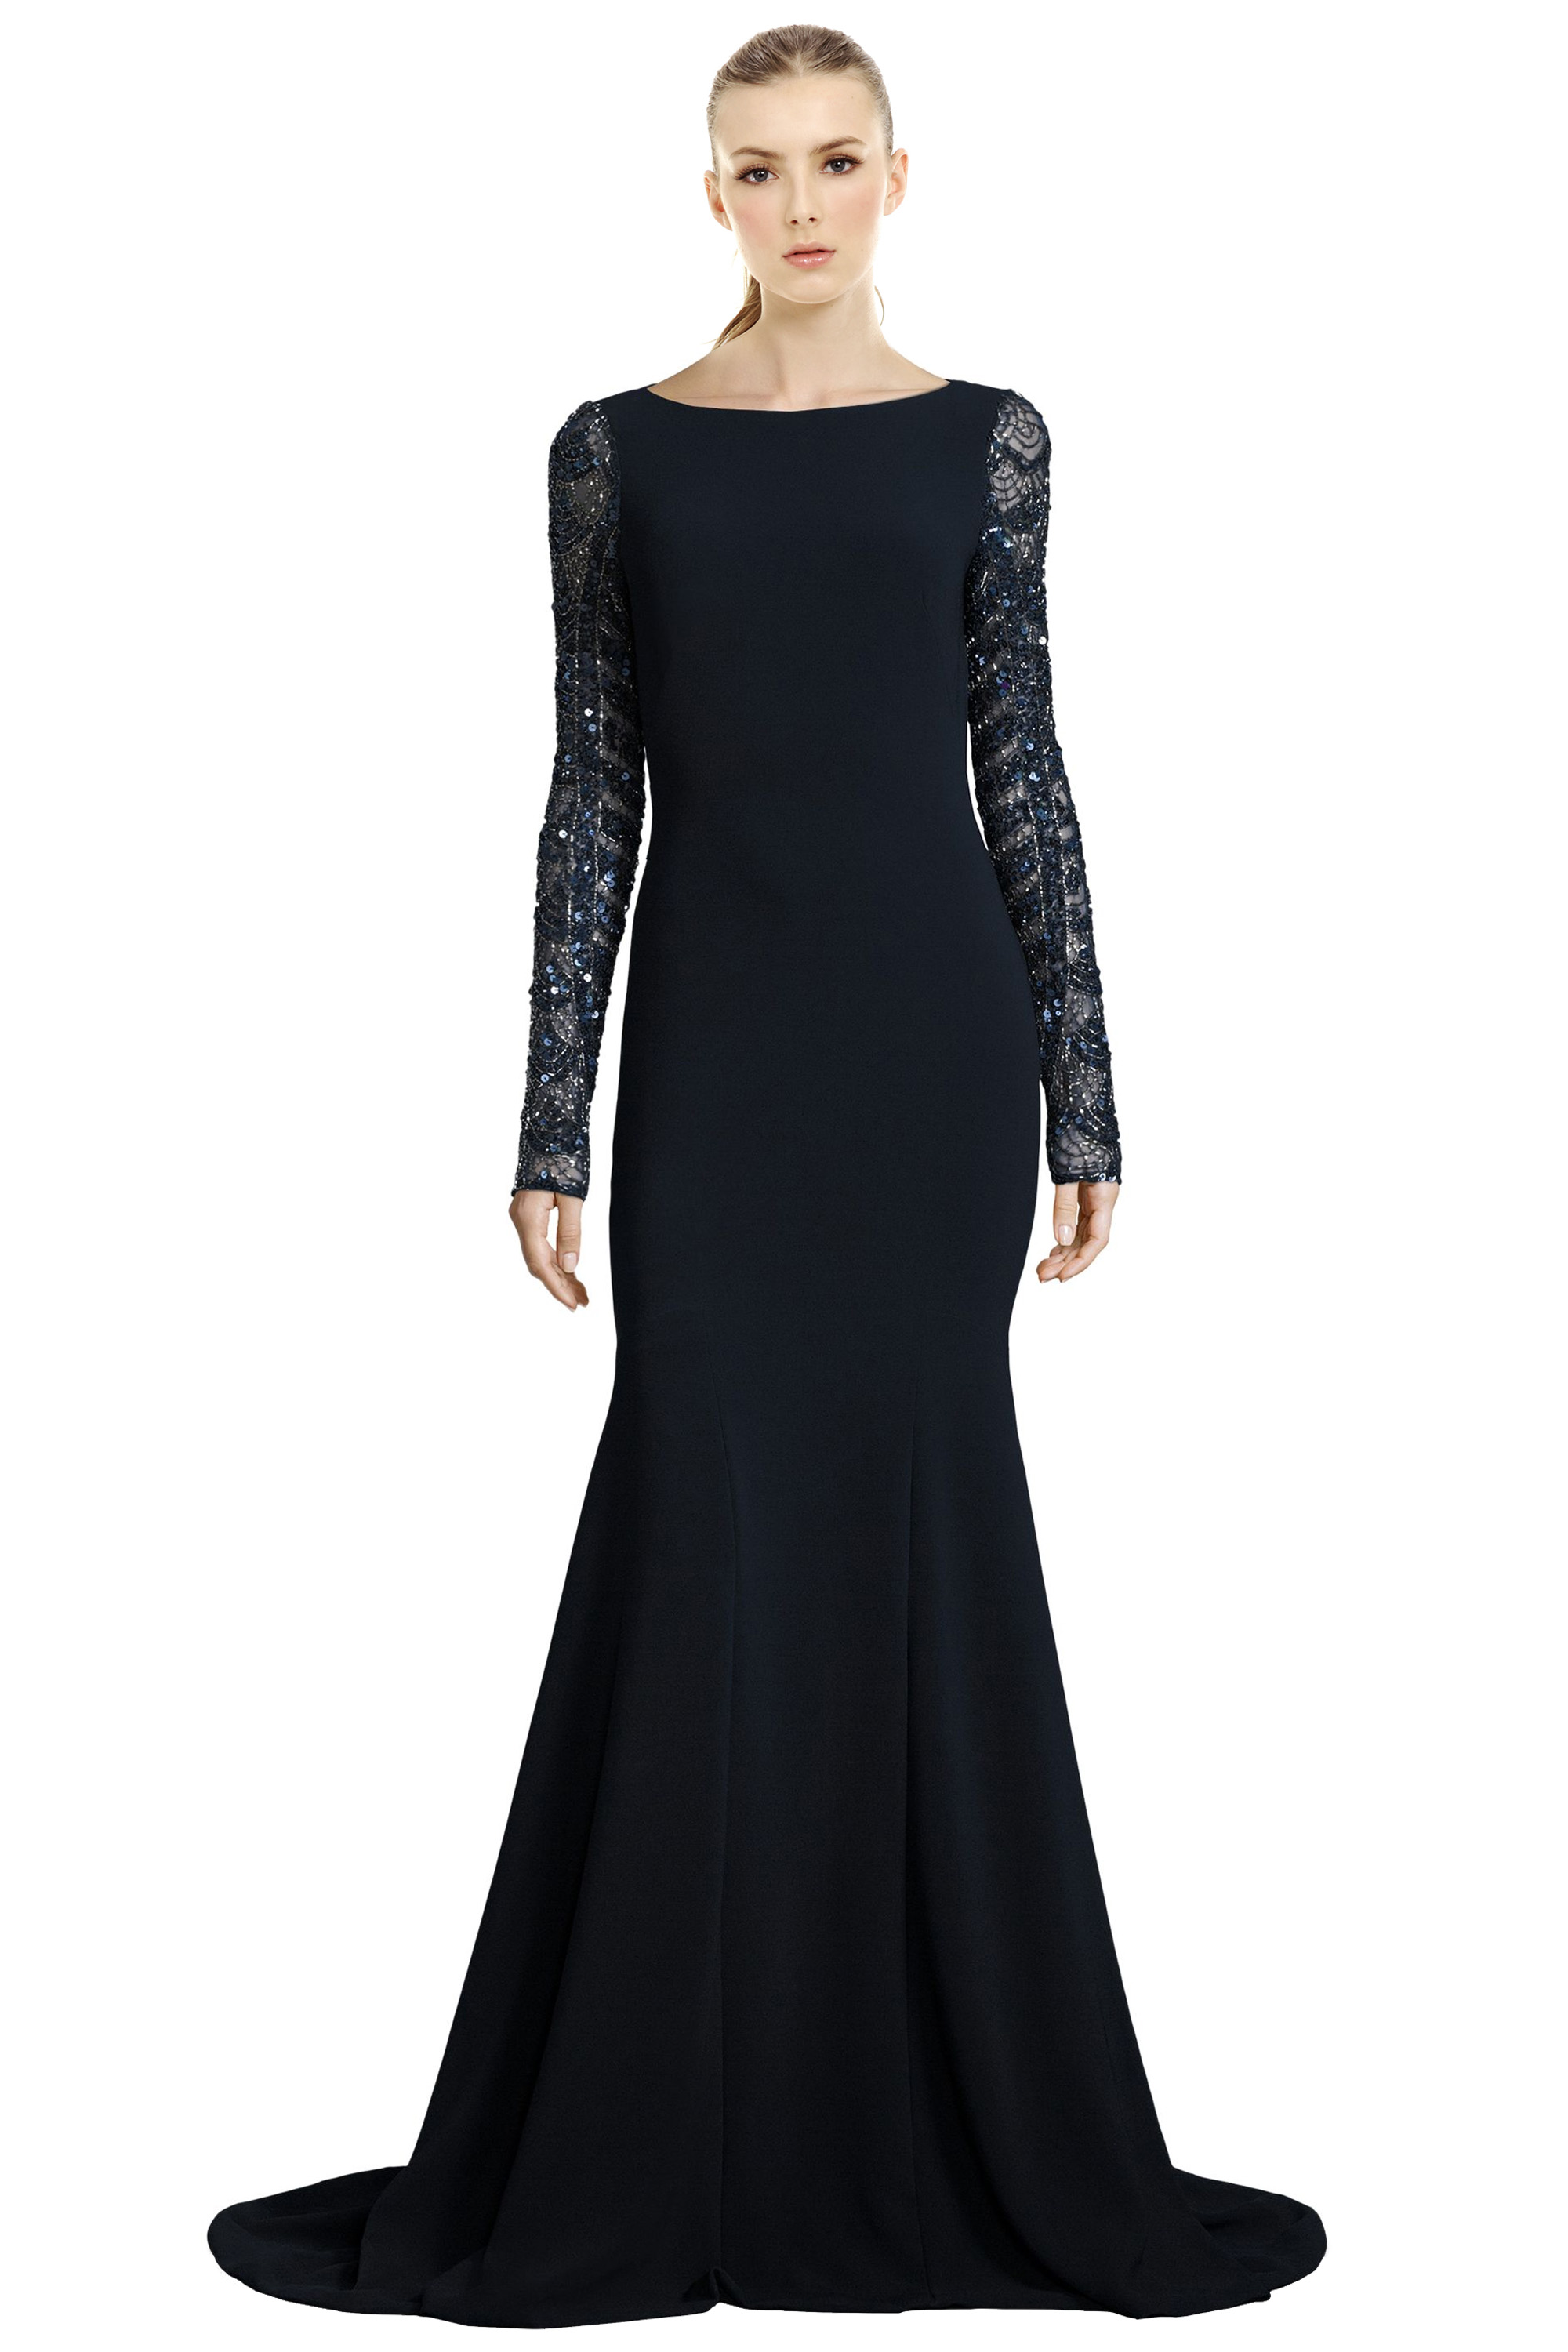 Theia Midnight Blue Sequined Long Sleeve Mermaid Evening Gown Dress ...